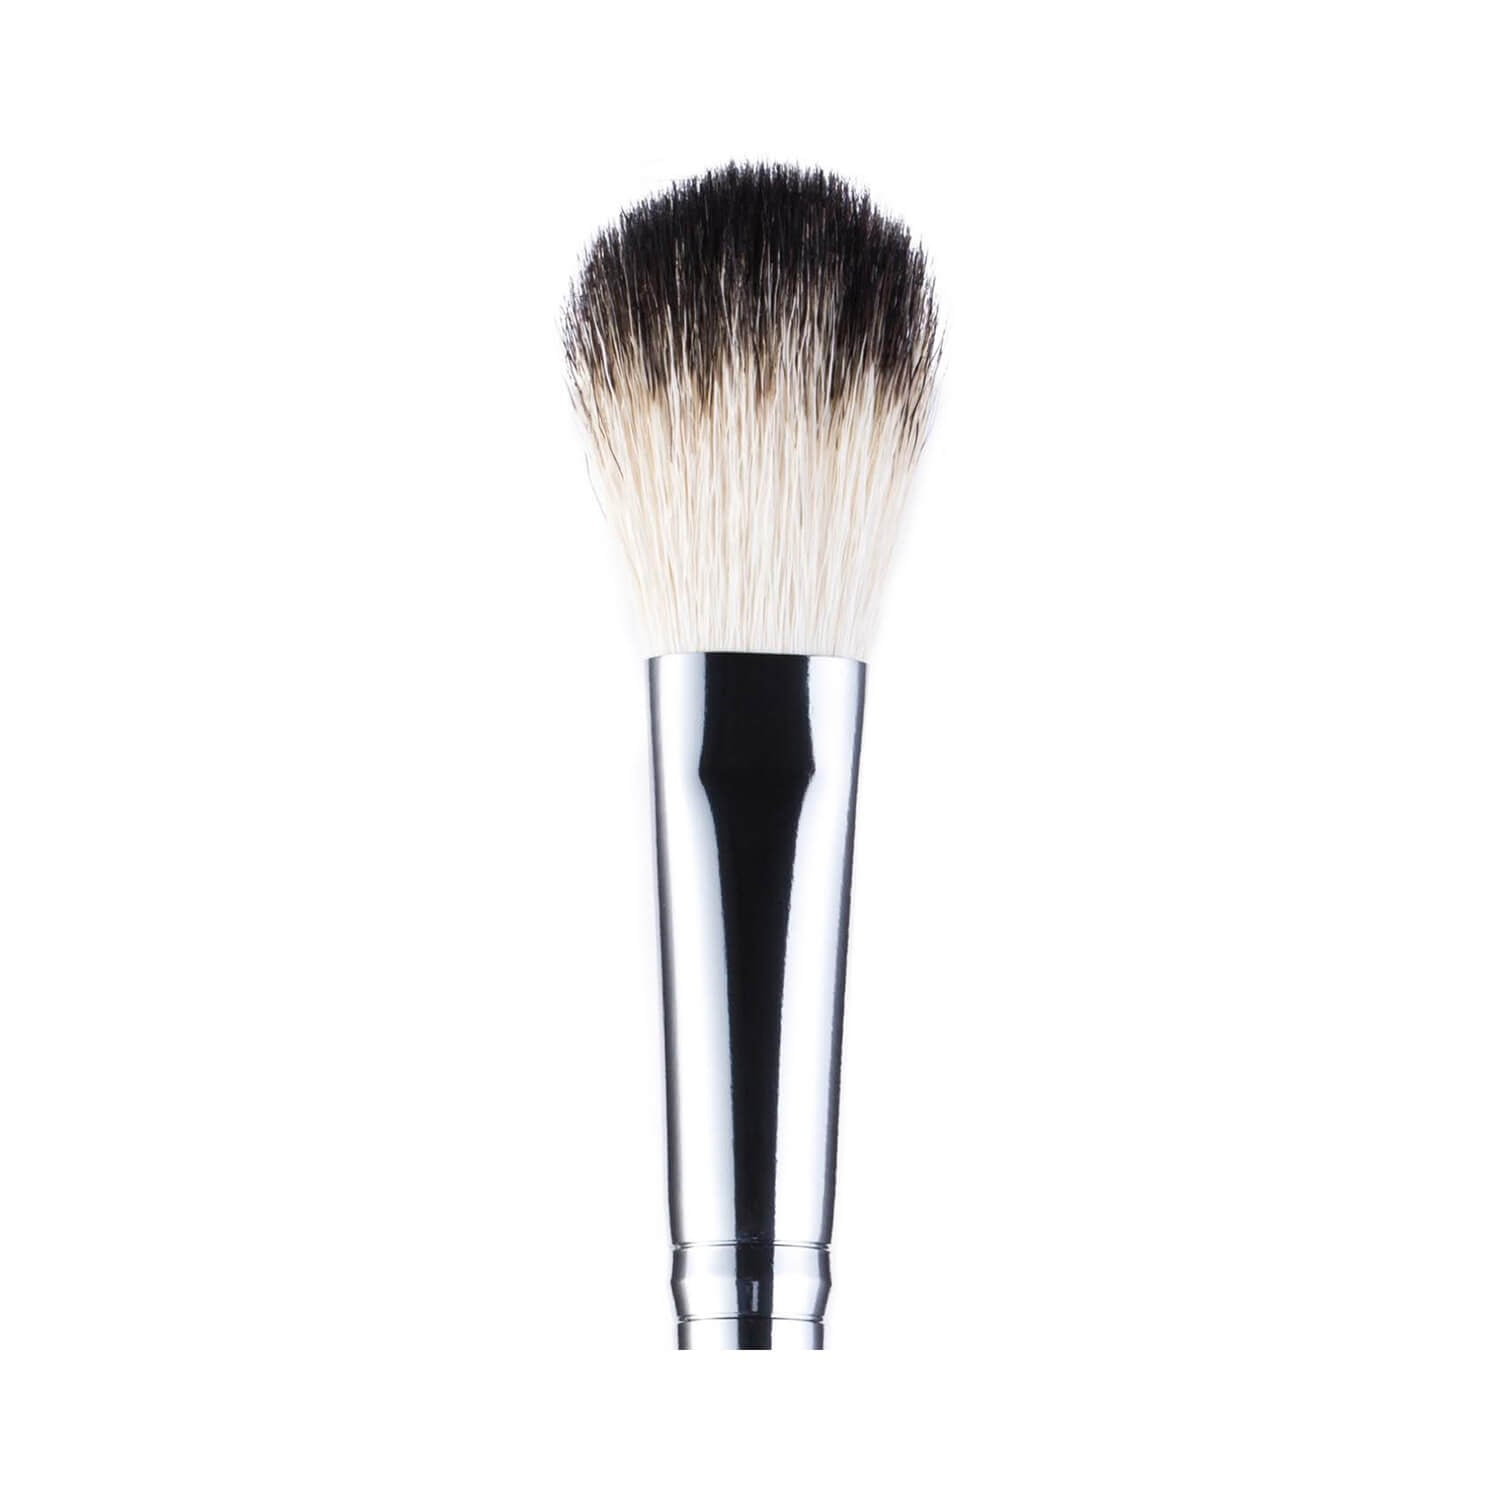 Anastasia Beverly Hills A23 Illuminator Brush Head